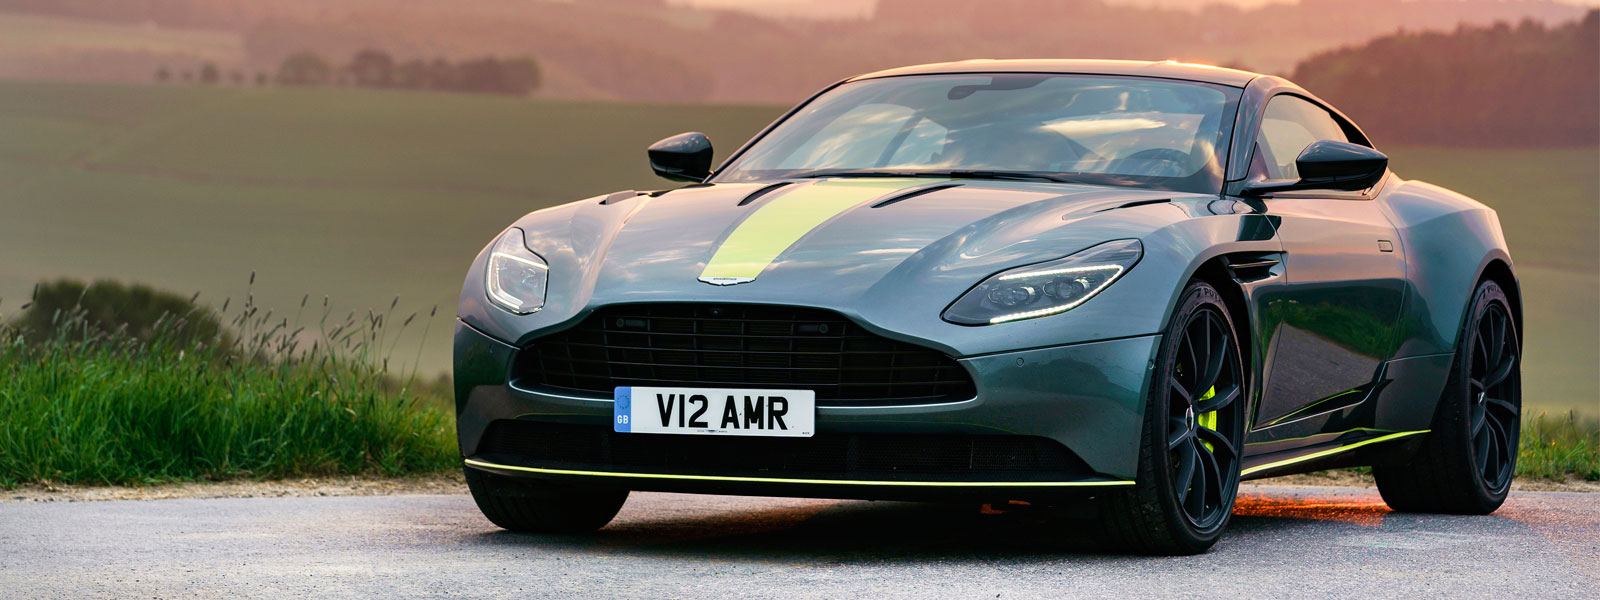 Exclusive Automotive Group Aston Martin Db11 Amr Model Information